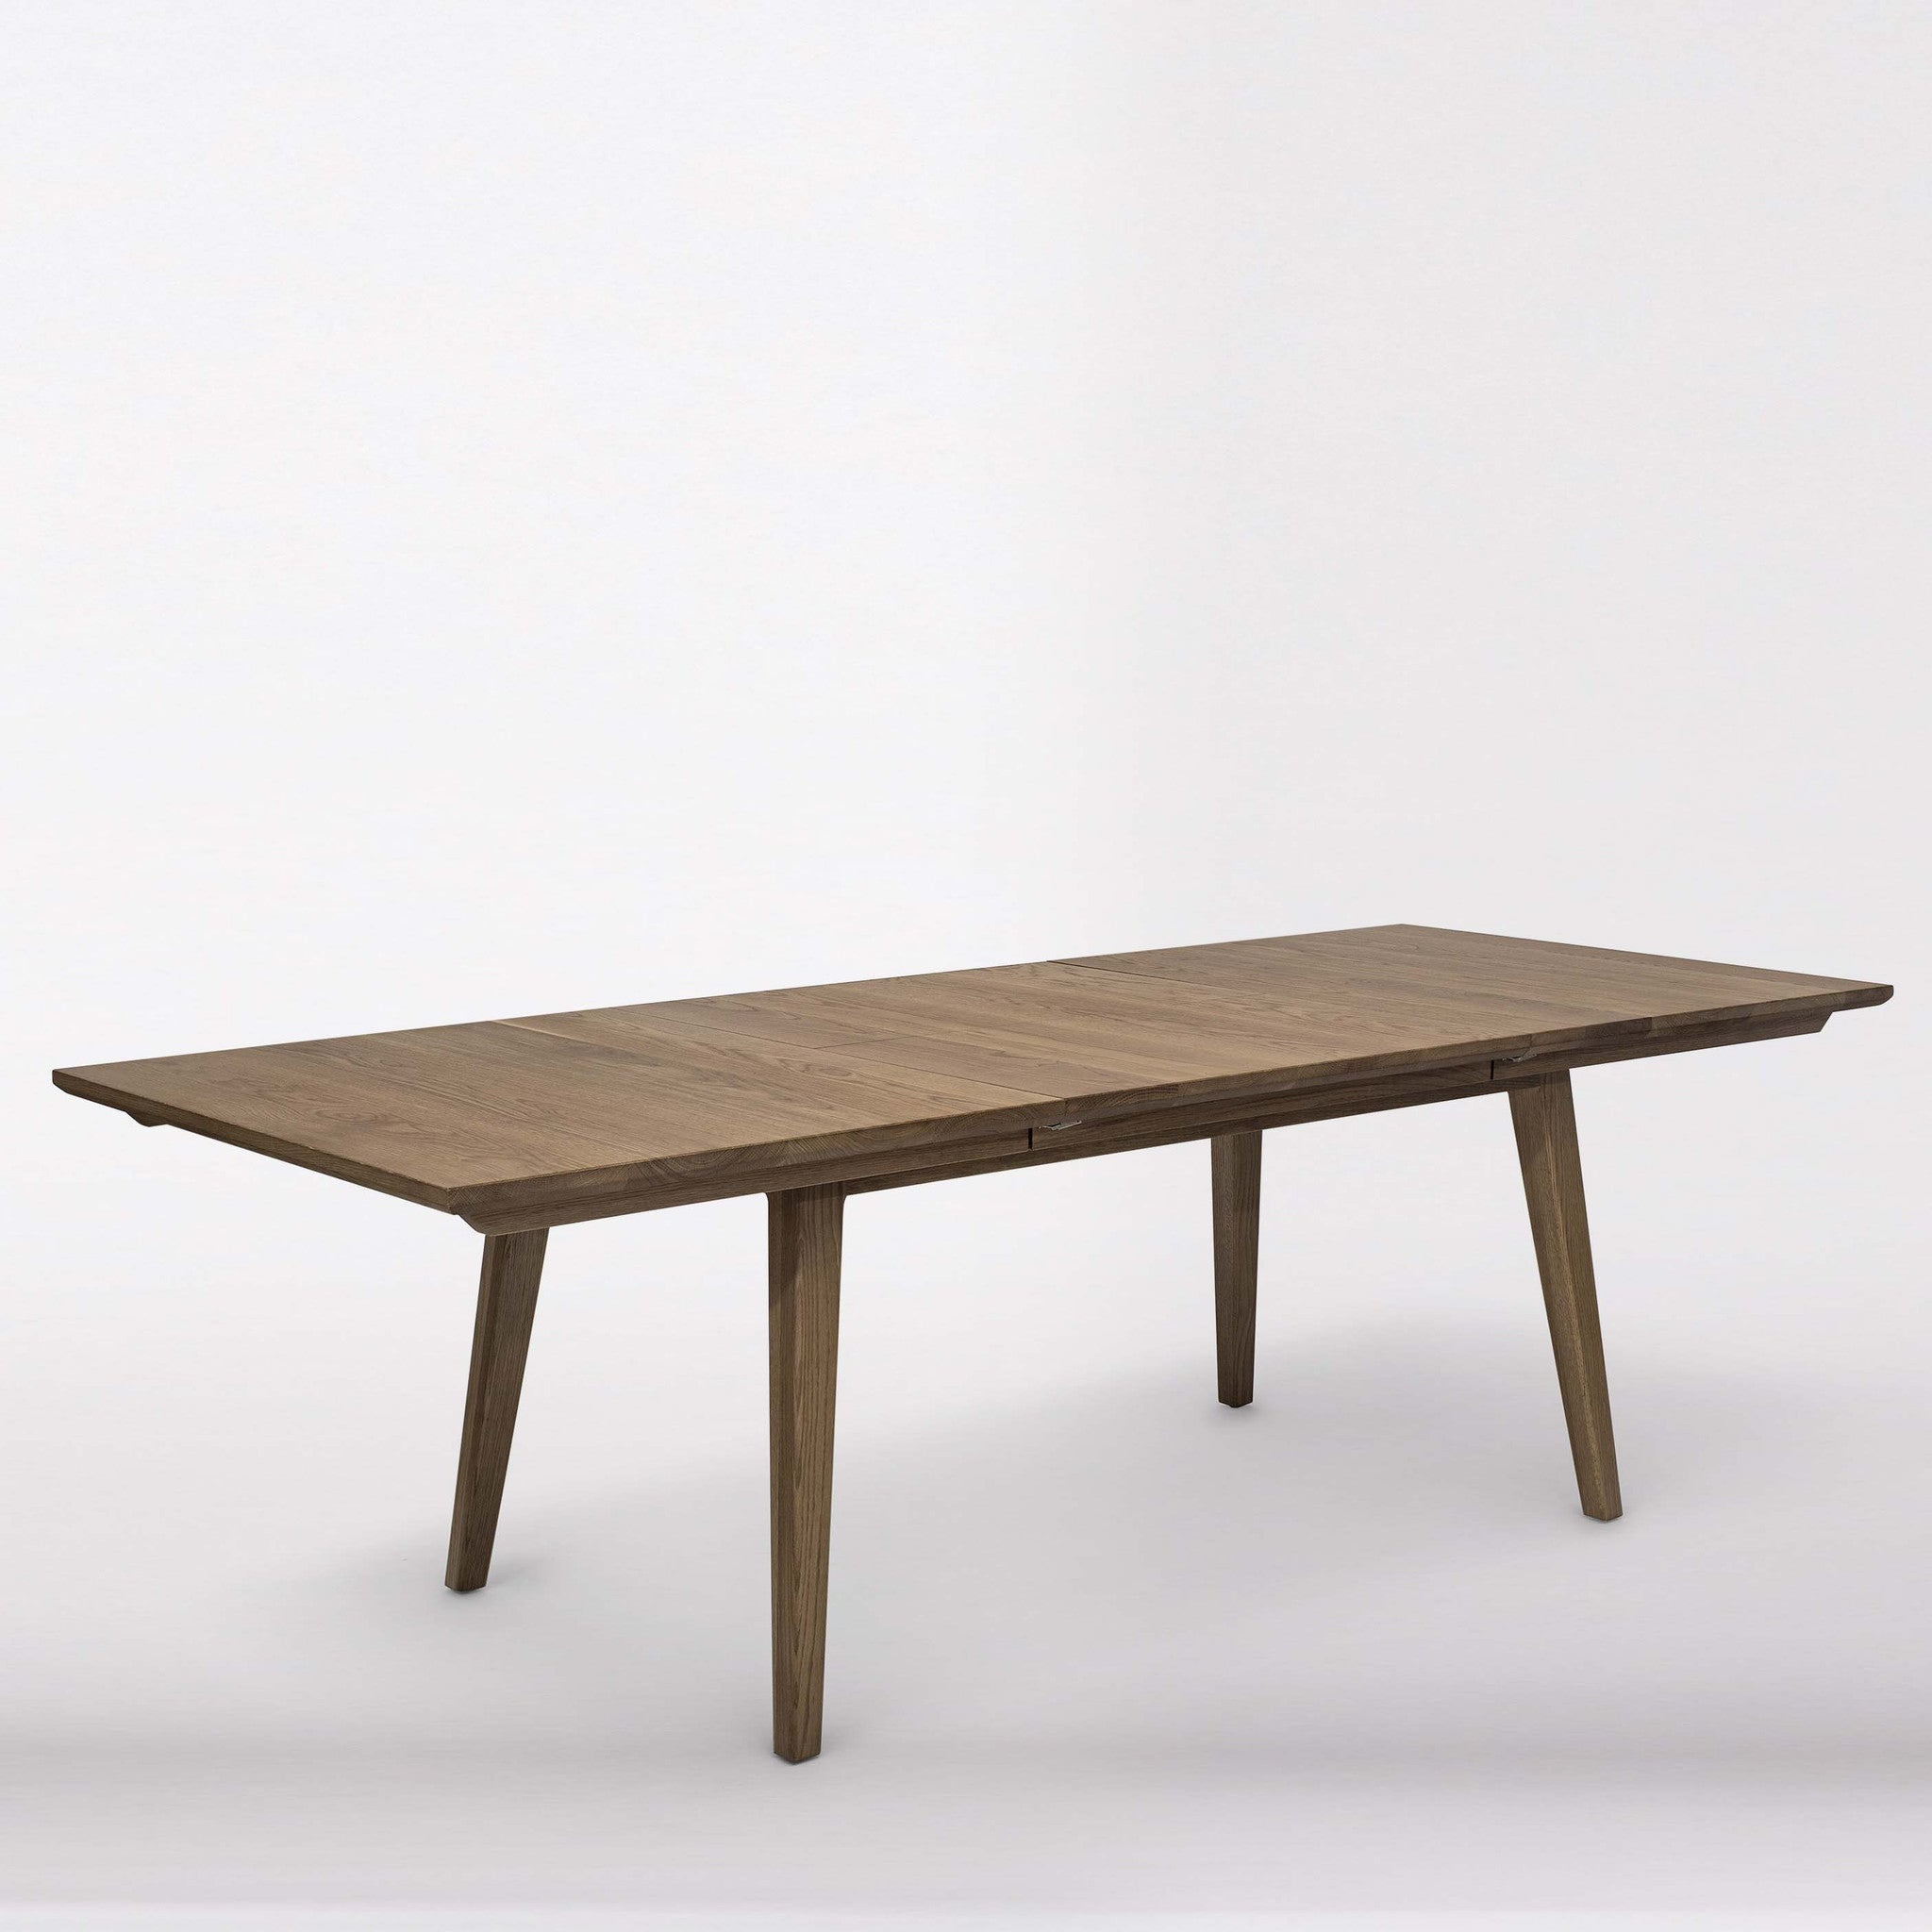 LoRusso Dining Table   Dellis Furniture Extension   2200/2800 X 1200 X 750 /